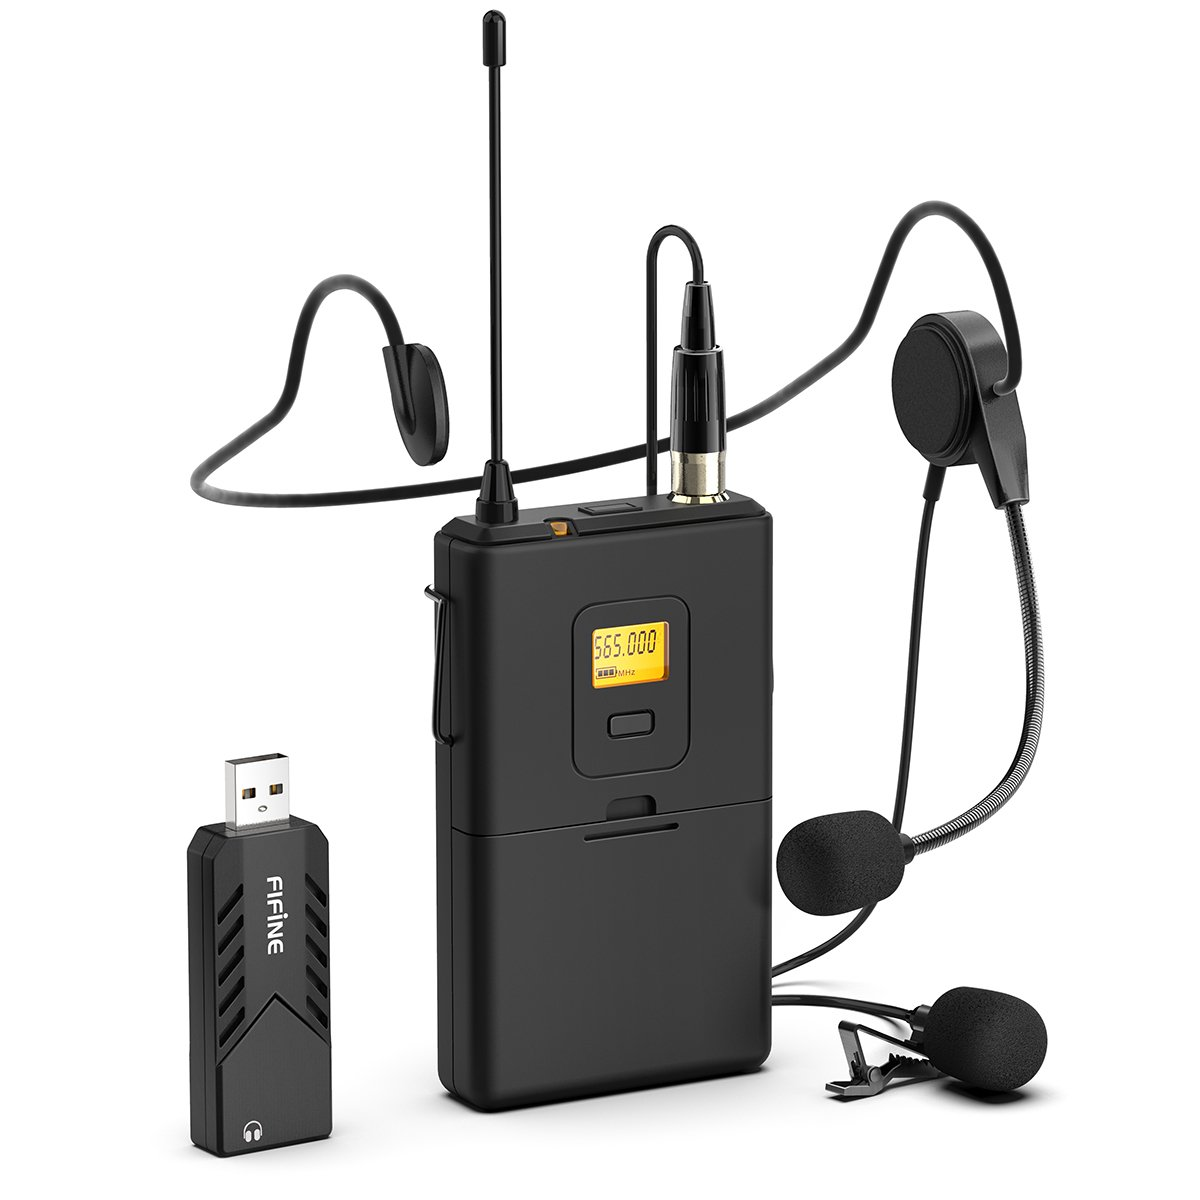 Wireless Microphones for Computer,FIFINE USB Wireless Microphone System for PC & Mac,Headset UHF Wireless System with USB Receiver,Transmitter,Headset and Clip Lavalier Lapel Mic.(K031B)